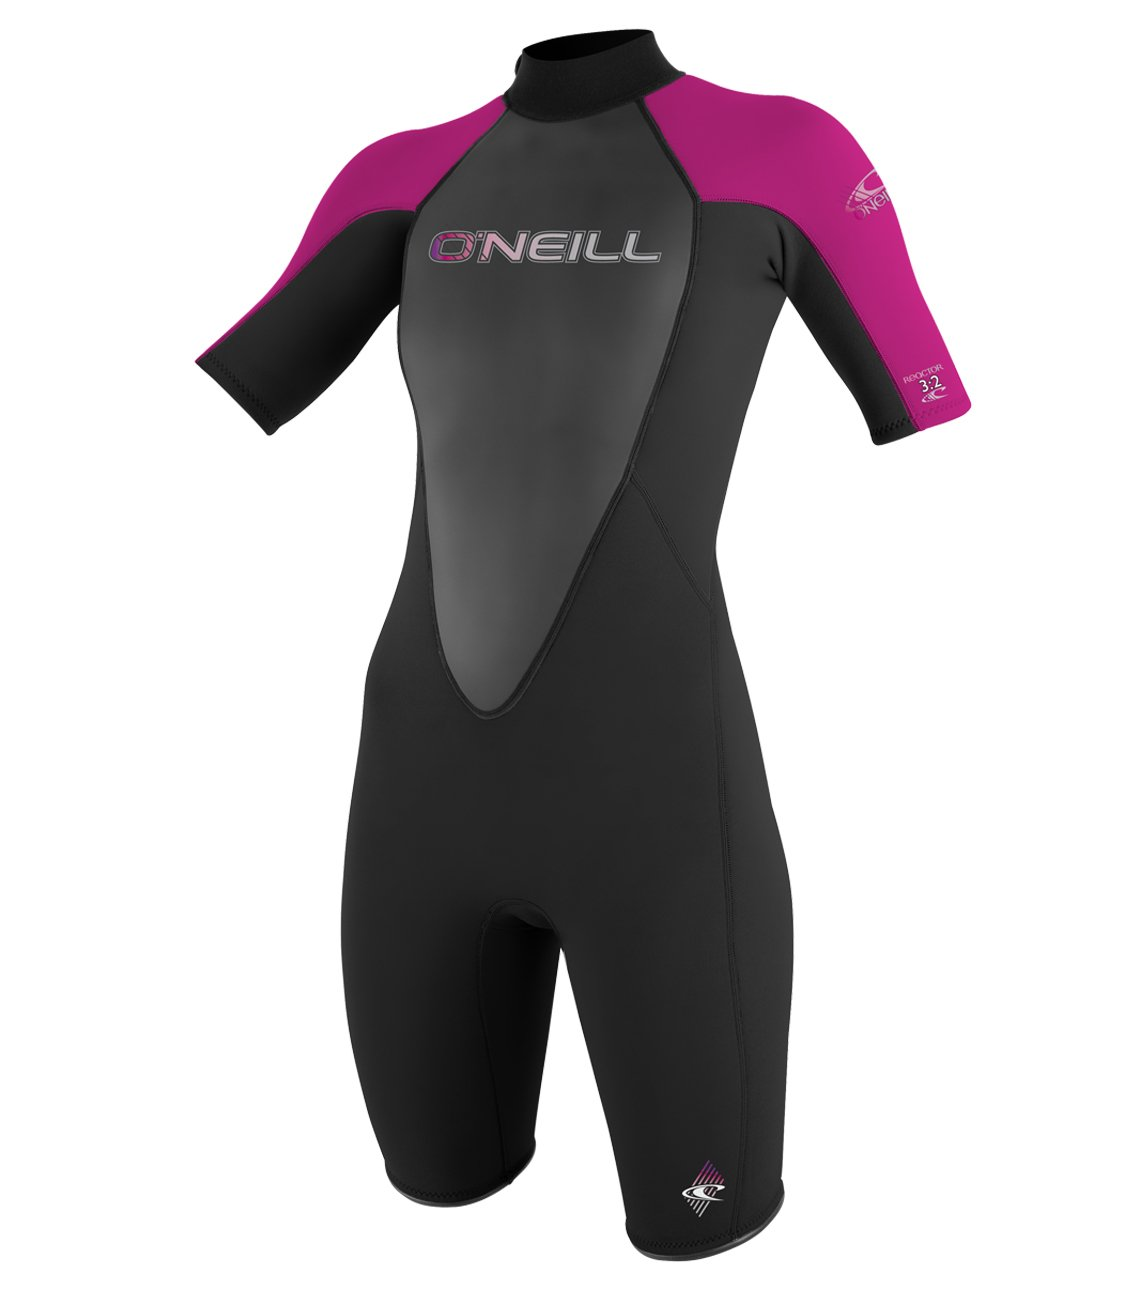 O'Neill   Women's Reactor 2mm Short Sleeve Back Zip Spring Wetsuit,Black/Berry,4 by O'Neill Wetsuits